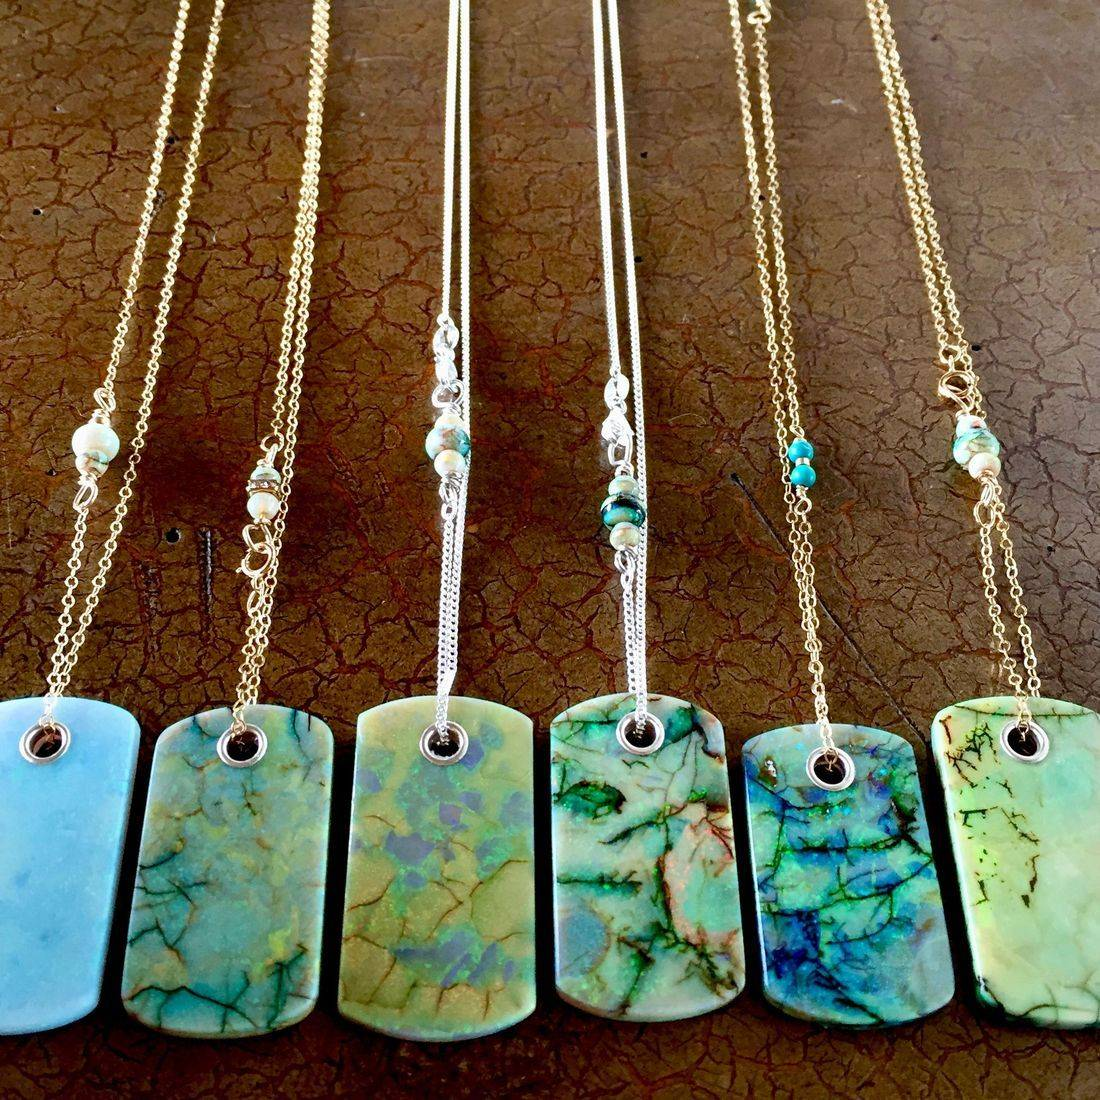 """14k gold filled necklaces with pearls and gemstones, Cultured Opal Dog tags 1.5"""" x .75"""" on 17"""" 14k gold filled chain $95.00 USD"""